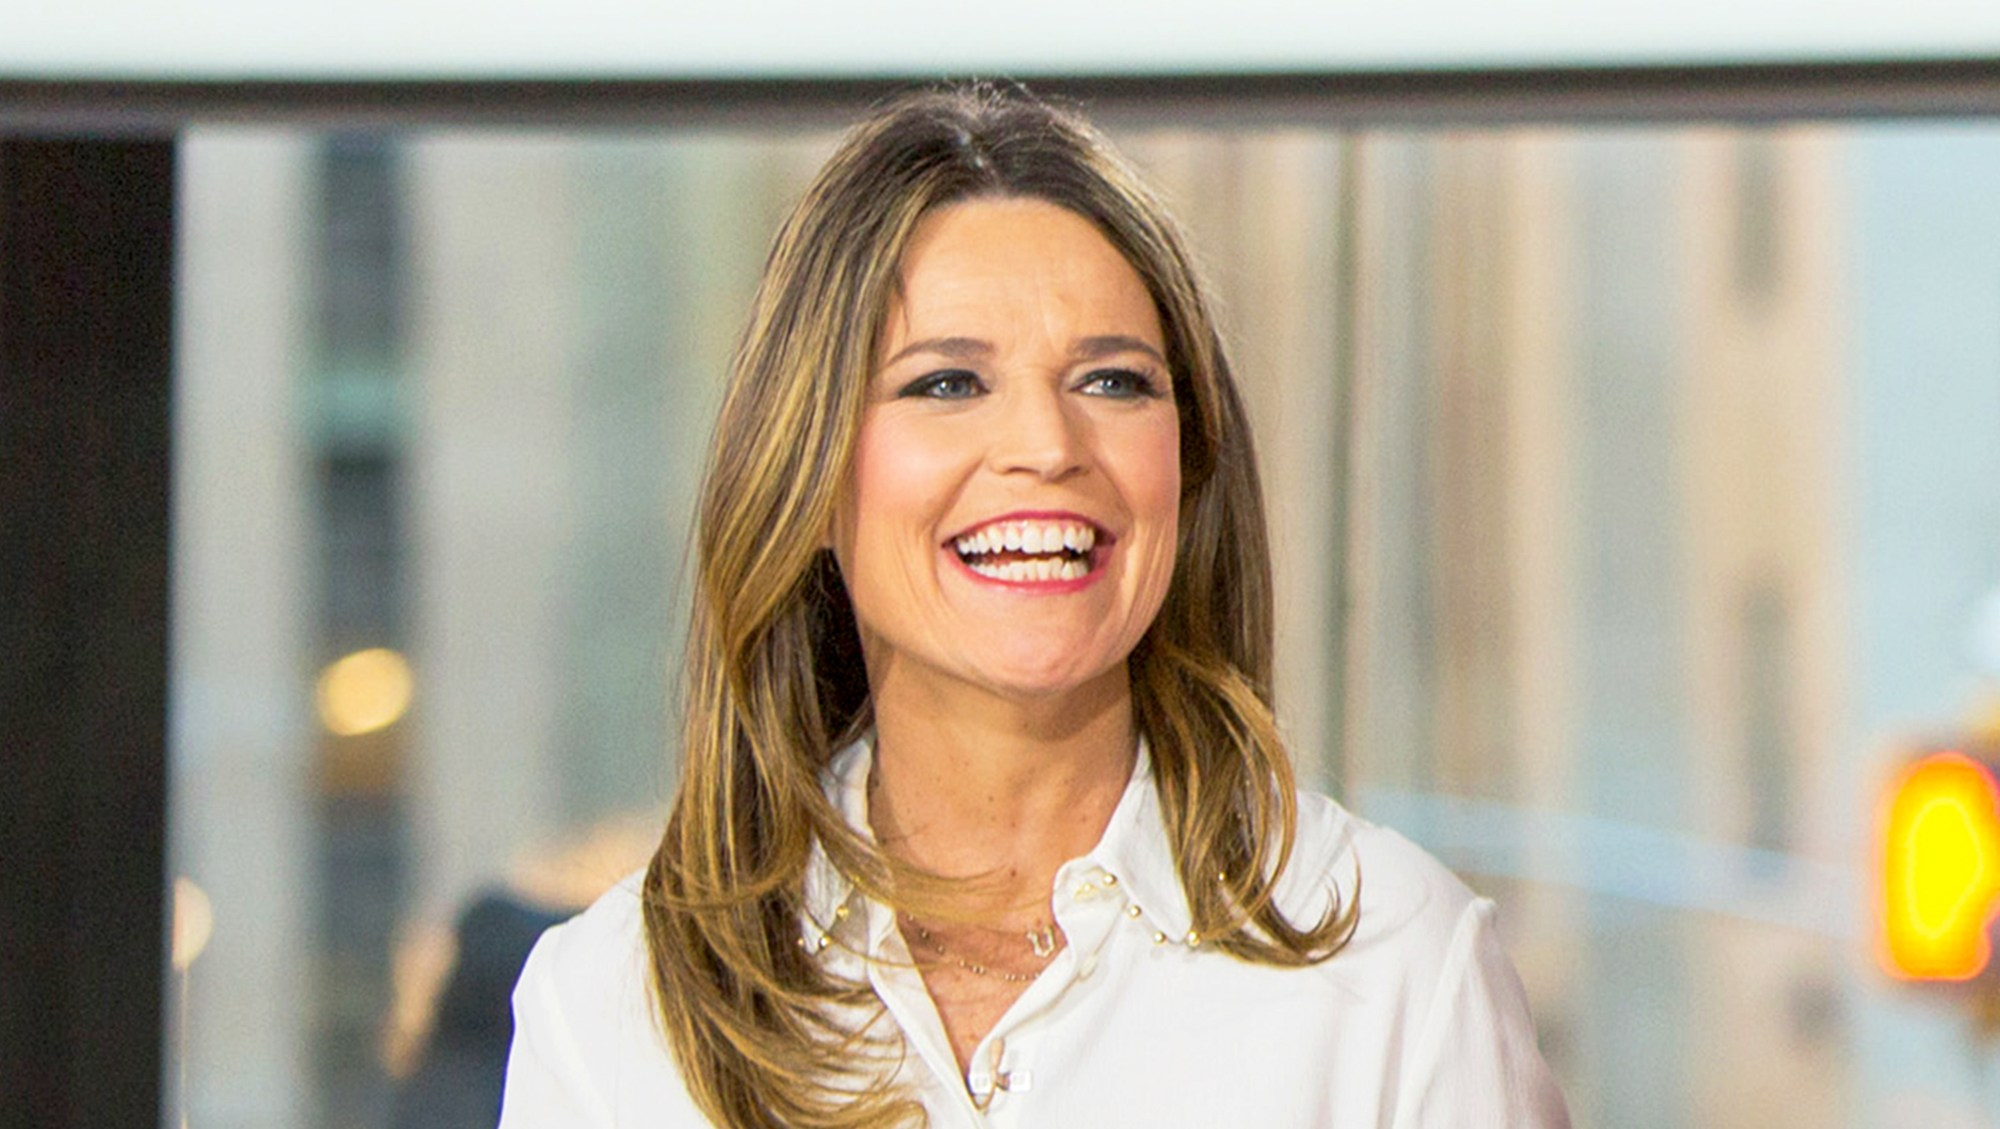 Savannah Guthrie on 'Today' show